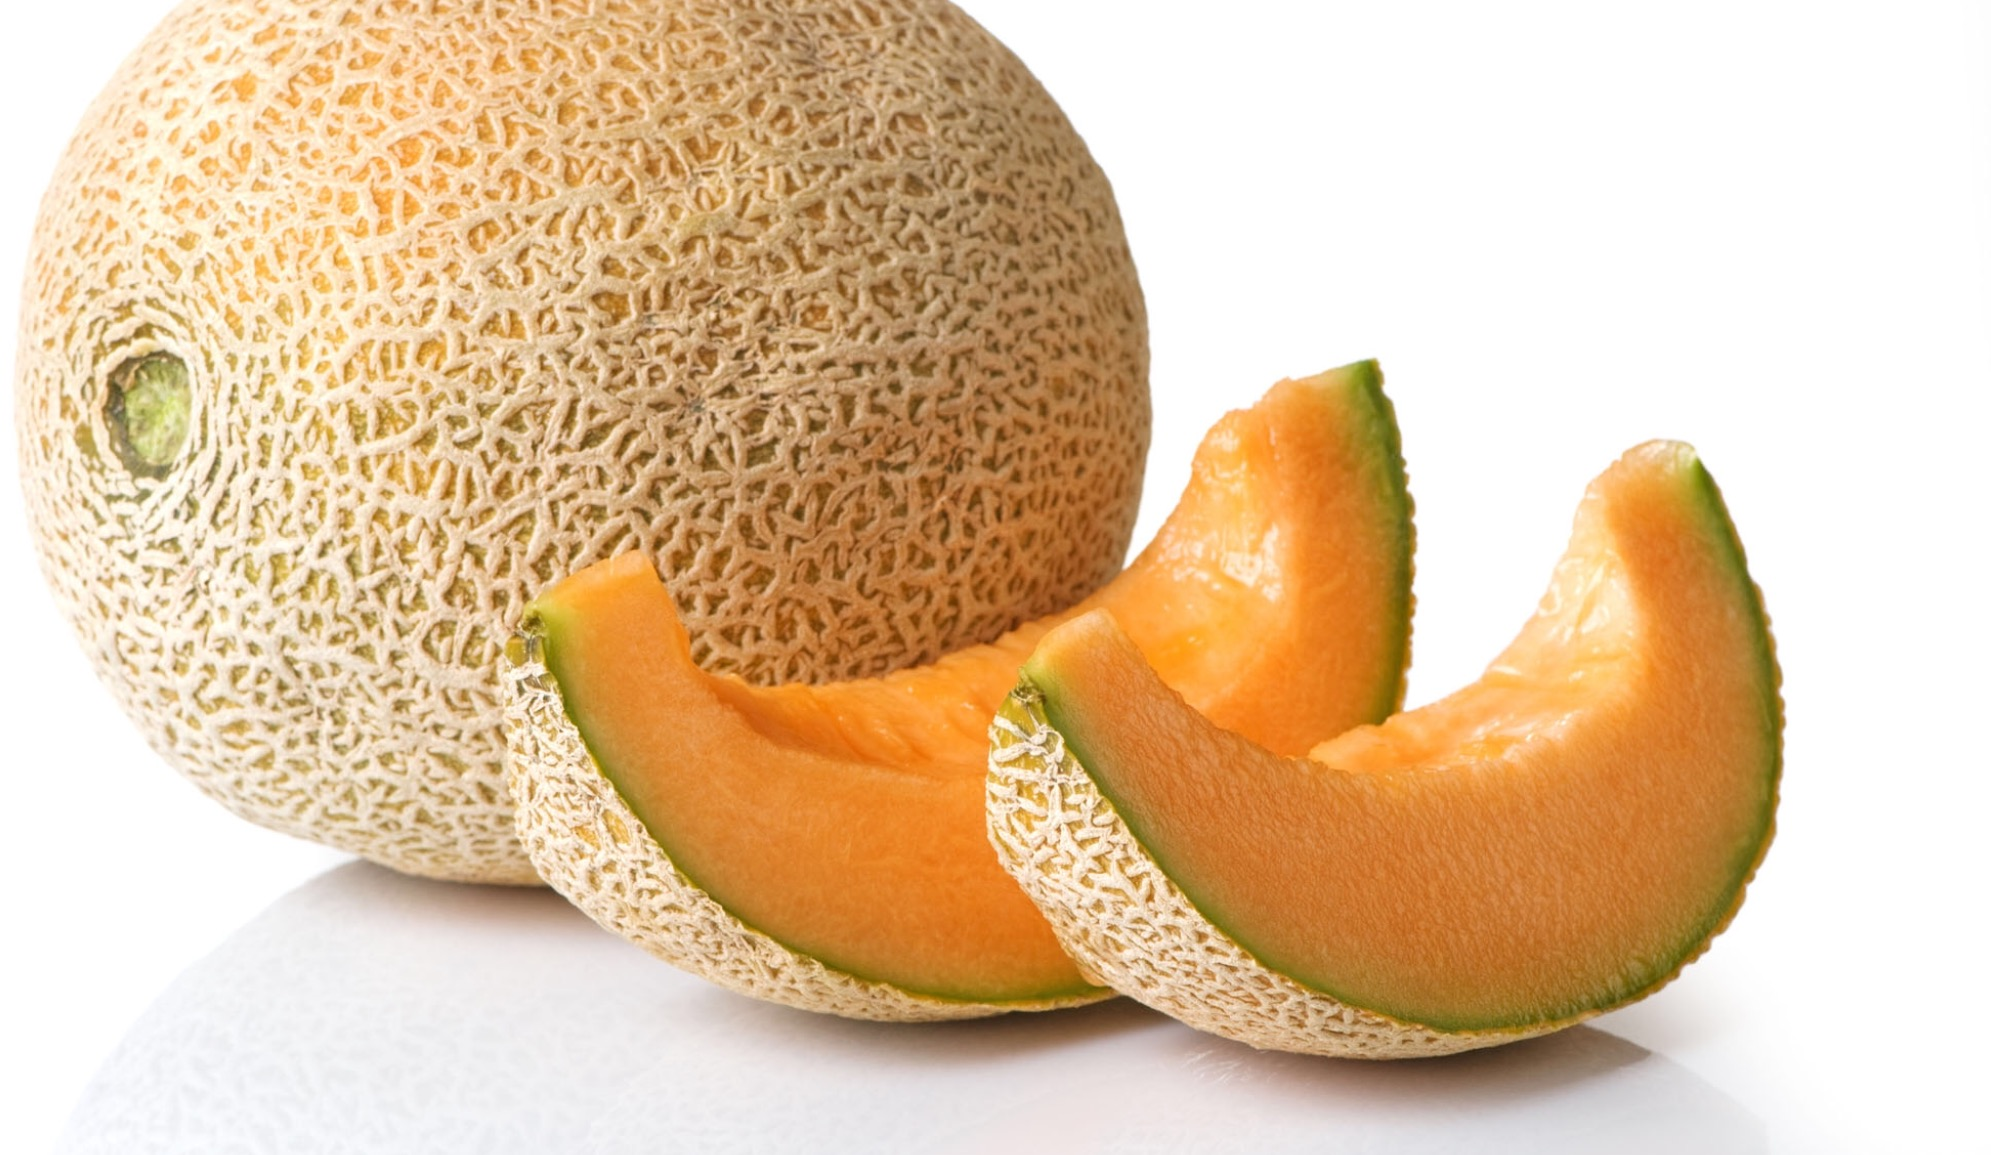 Melon - one to eat alone to avoid IBS